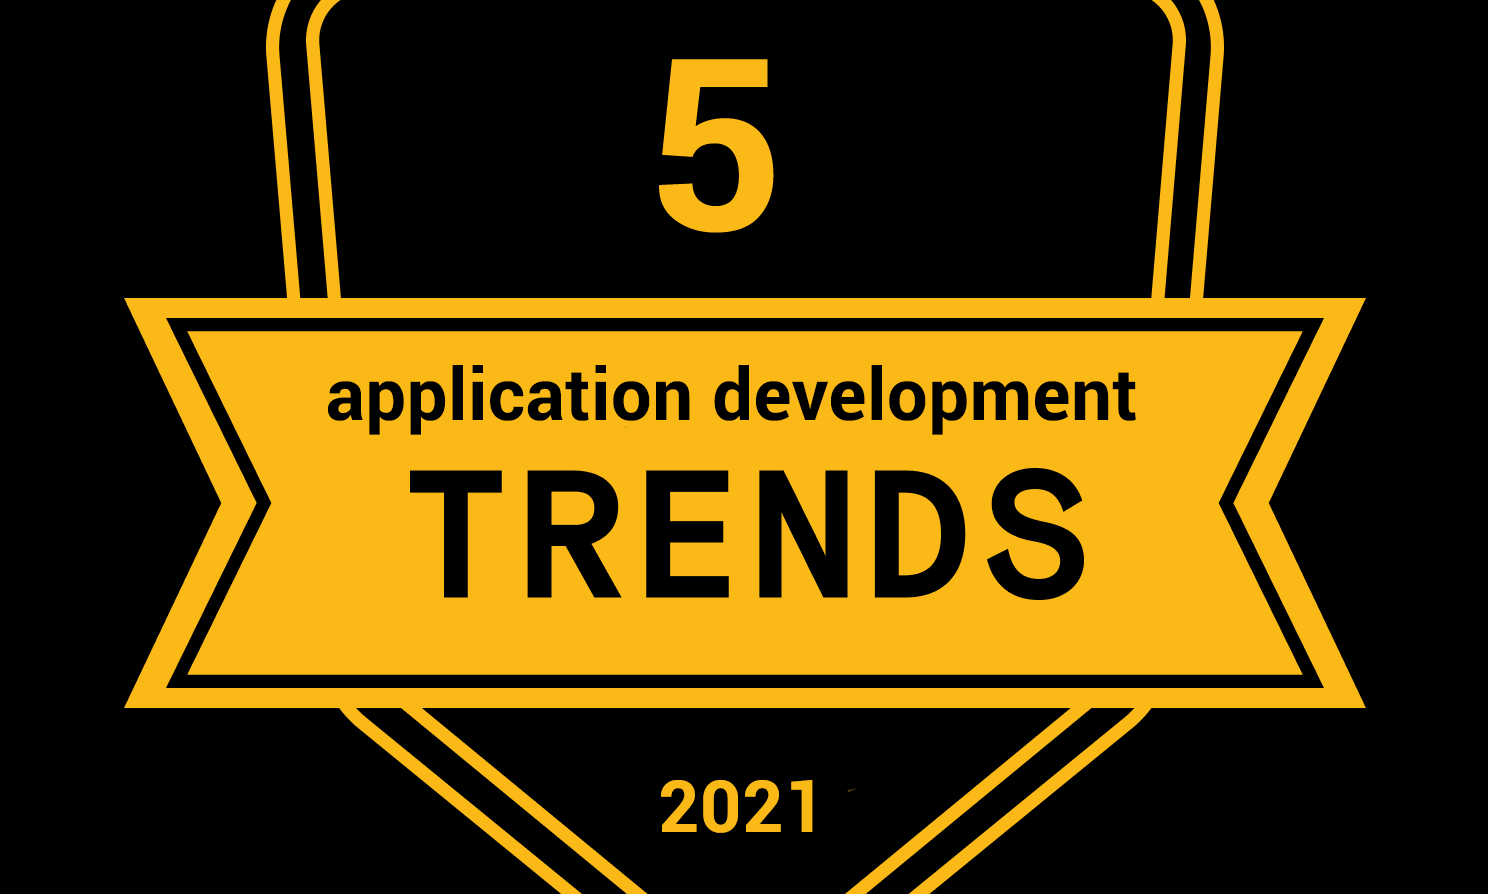 5 application development trends in 2021